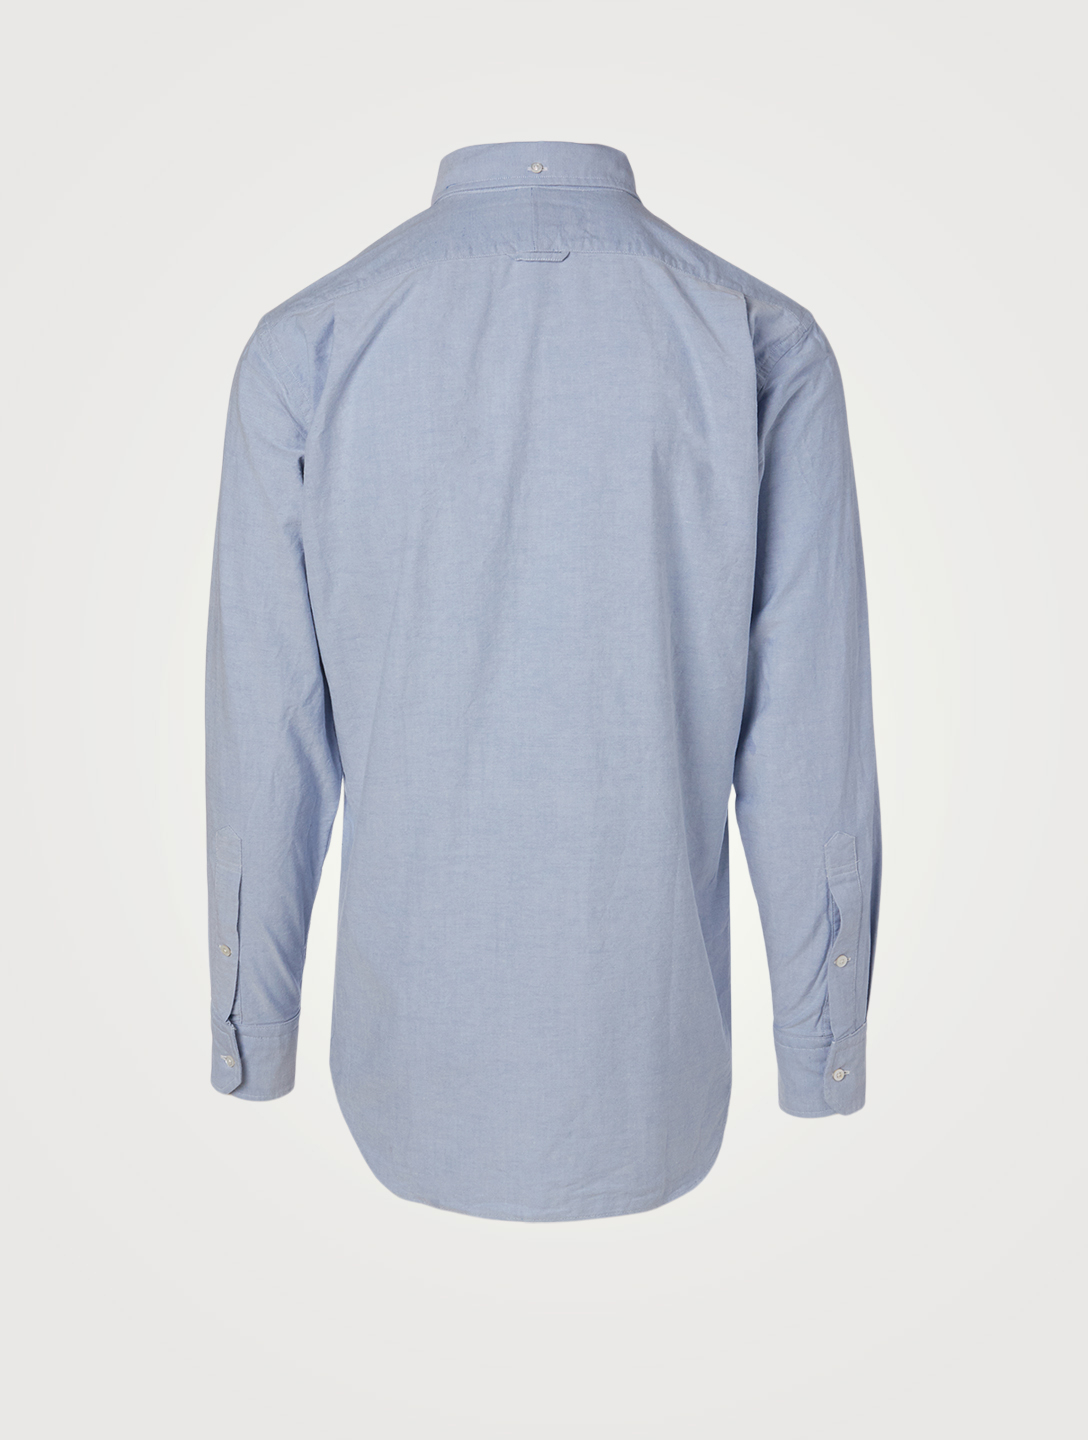 THOM BROWNE Cotton Oxford Shirt Men's Blue